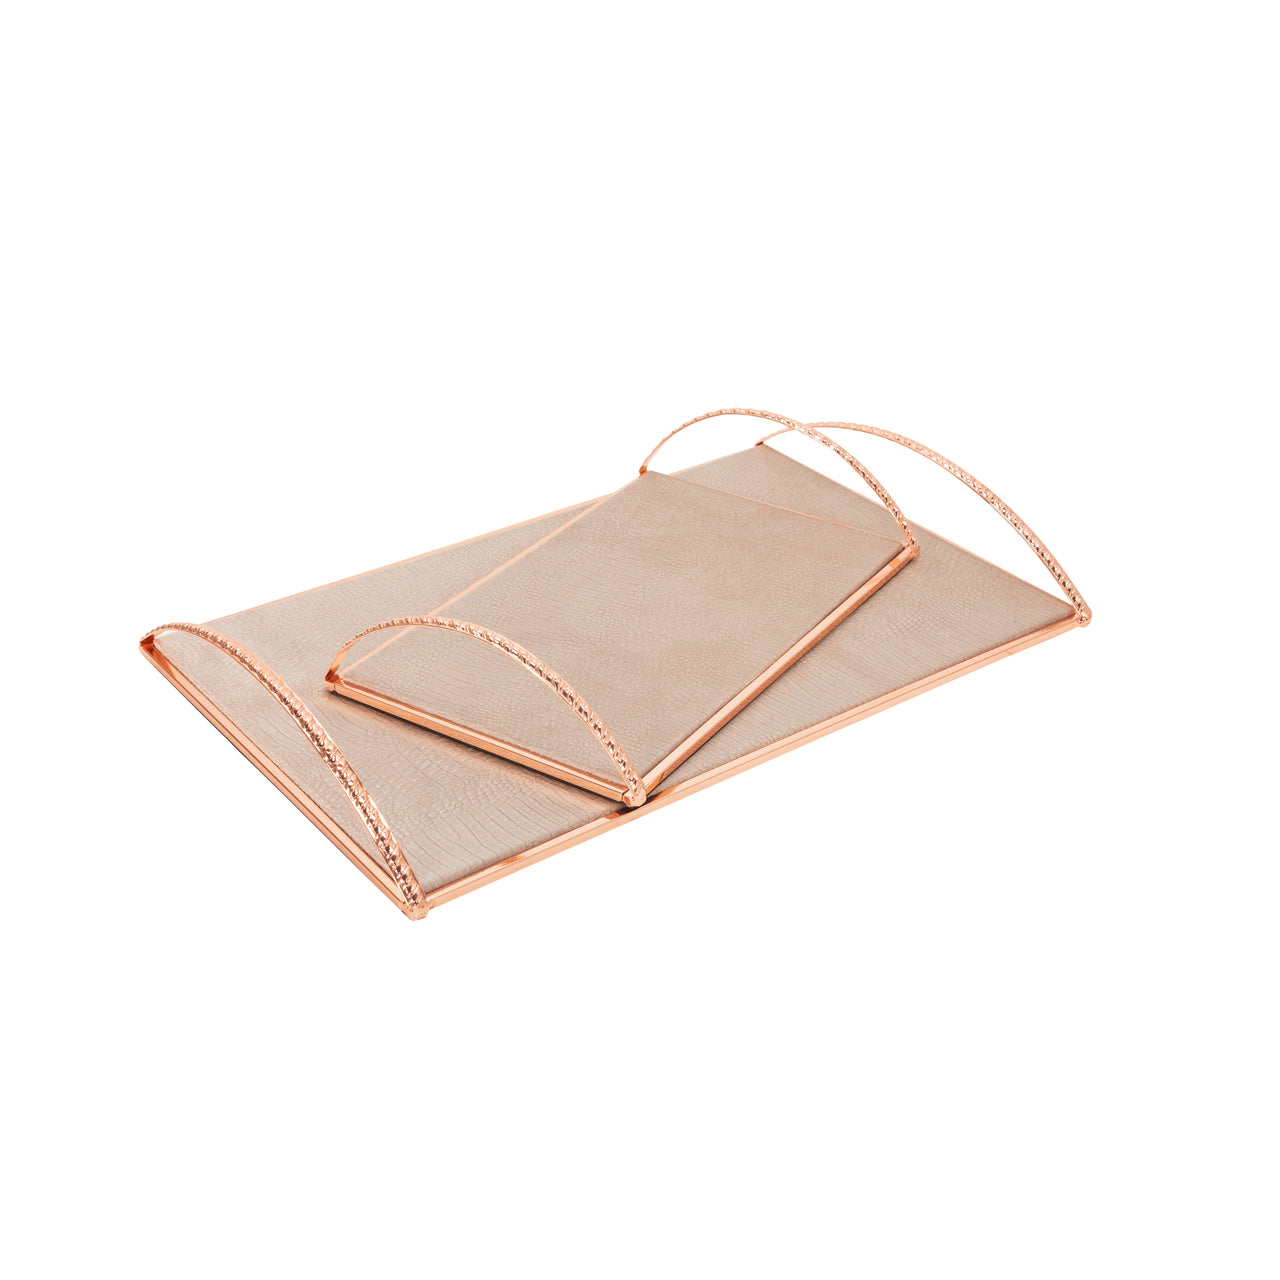 "Set / 2 METAL 13/19"" TRAY W/ HANDLES, ROSE GOLD - Casa Muebles"